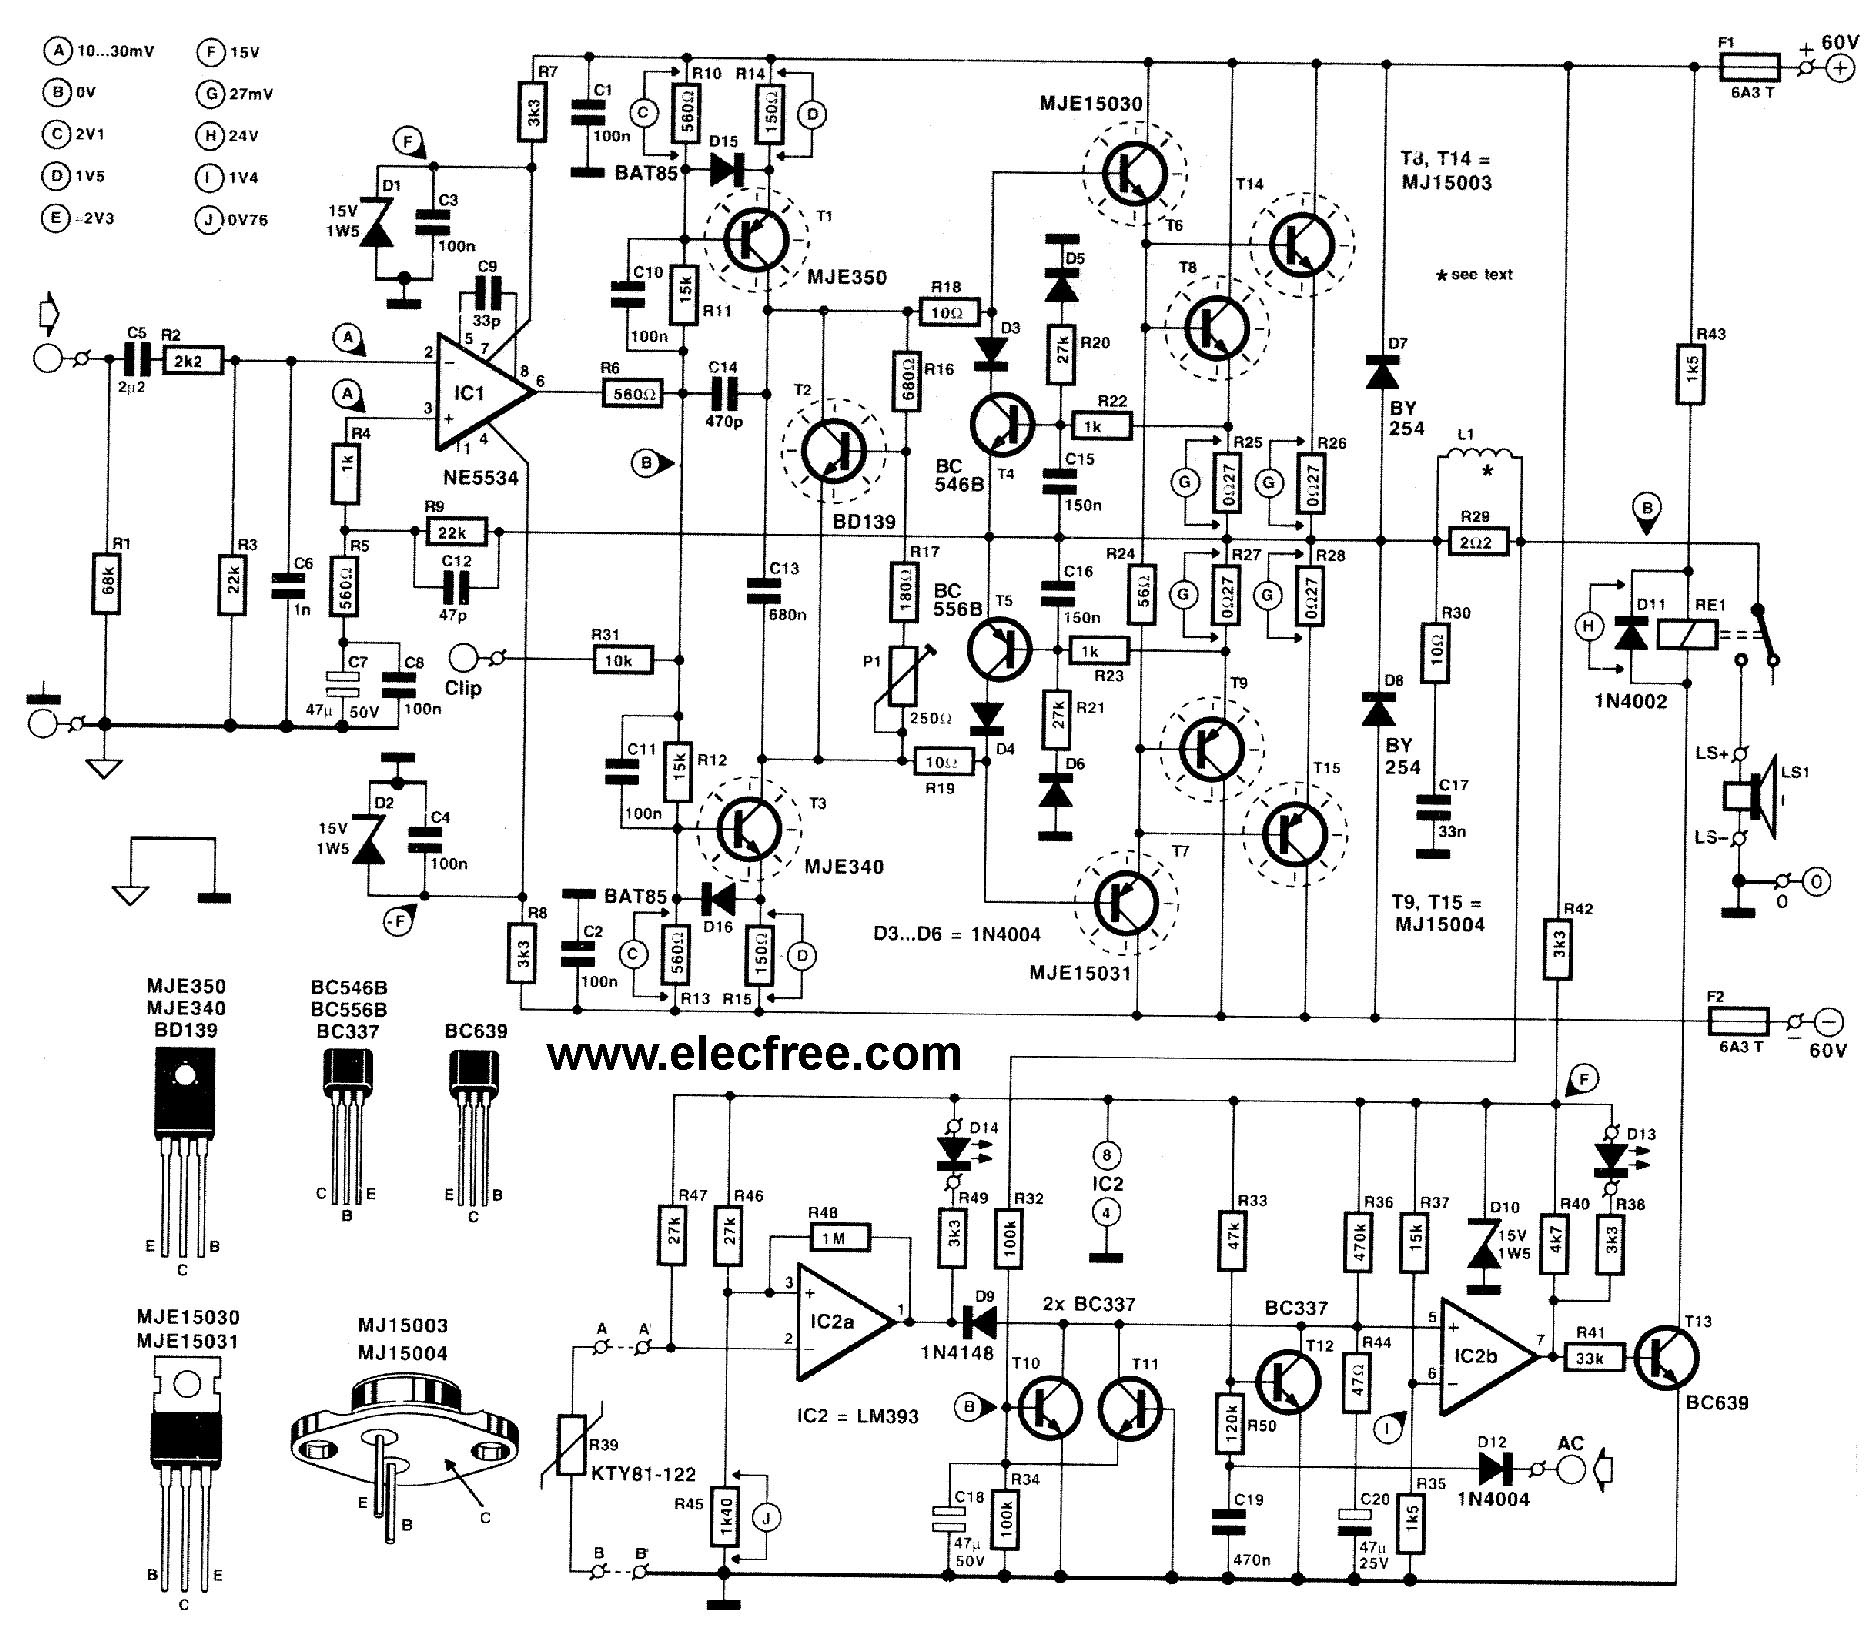 bose subwoofer diagrama de cableado free download